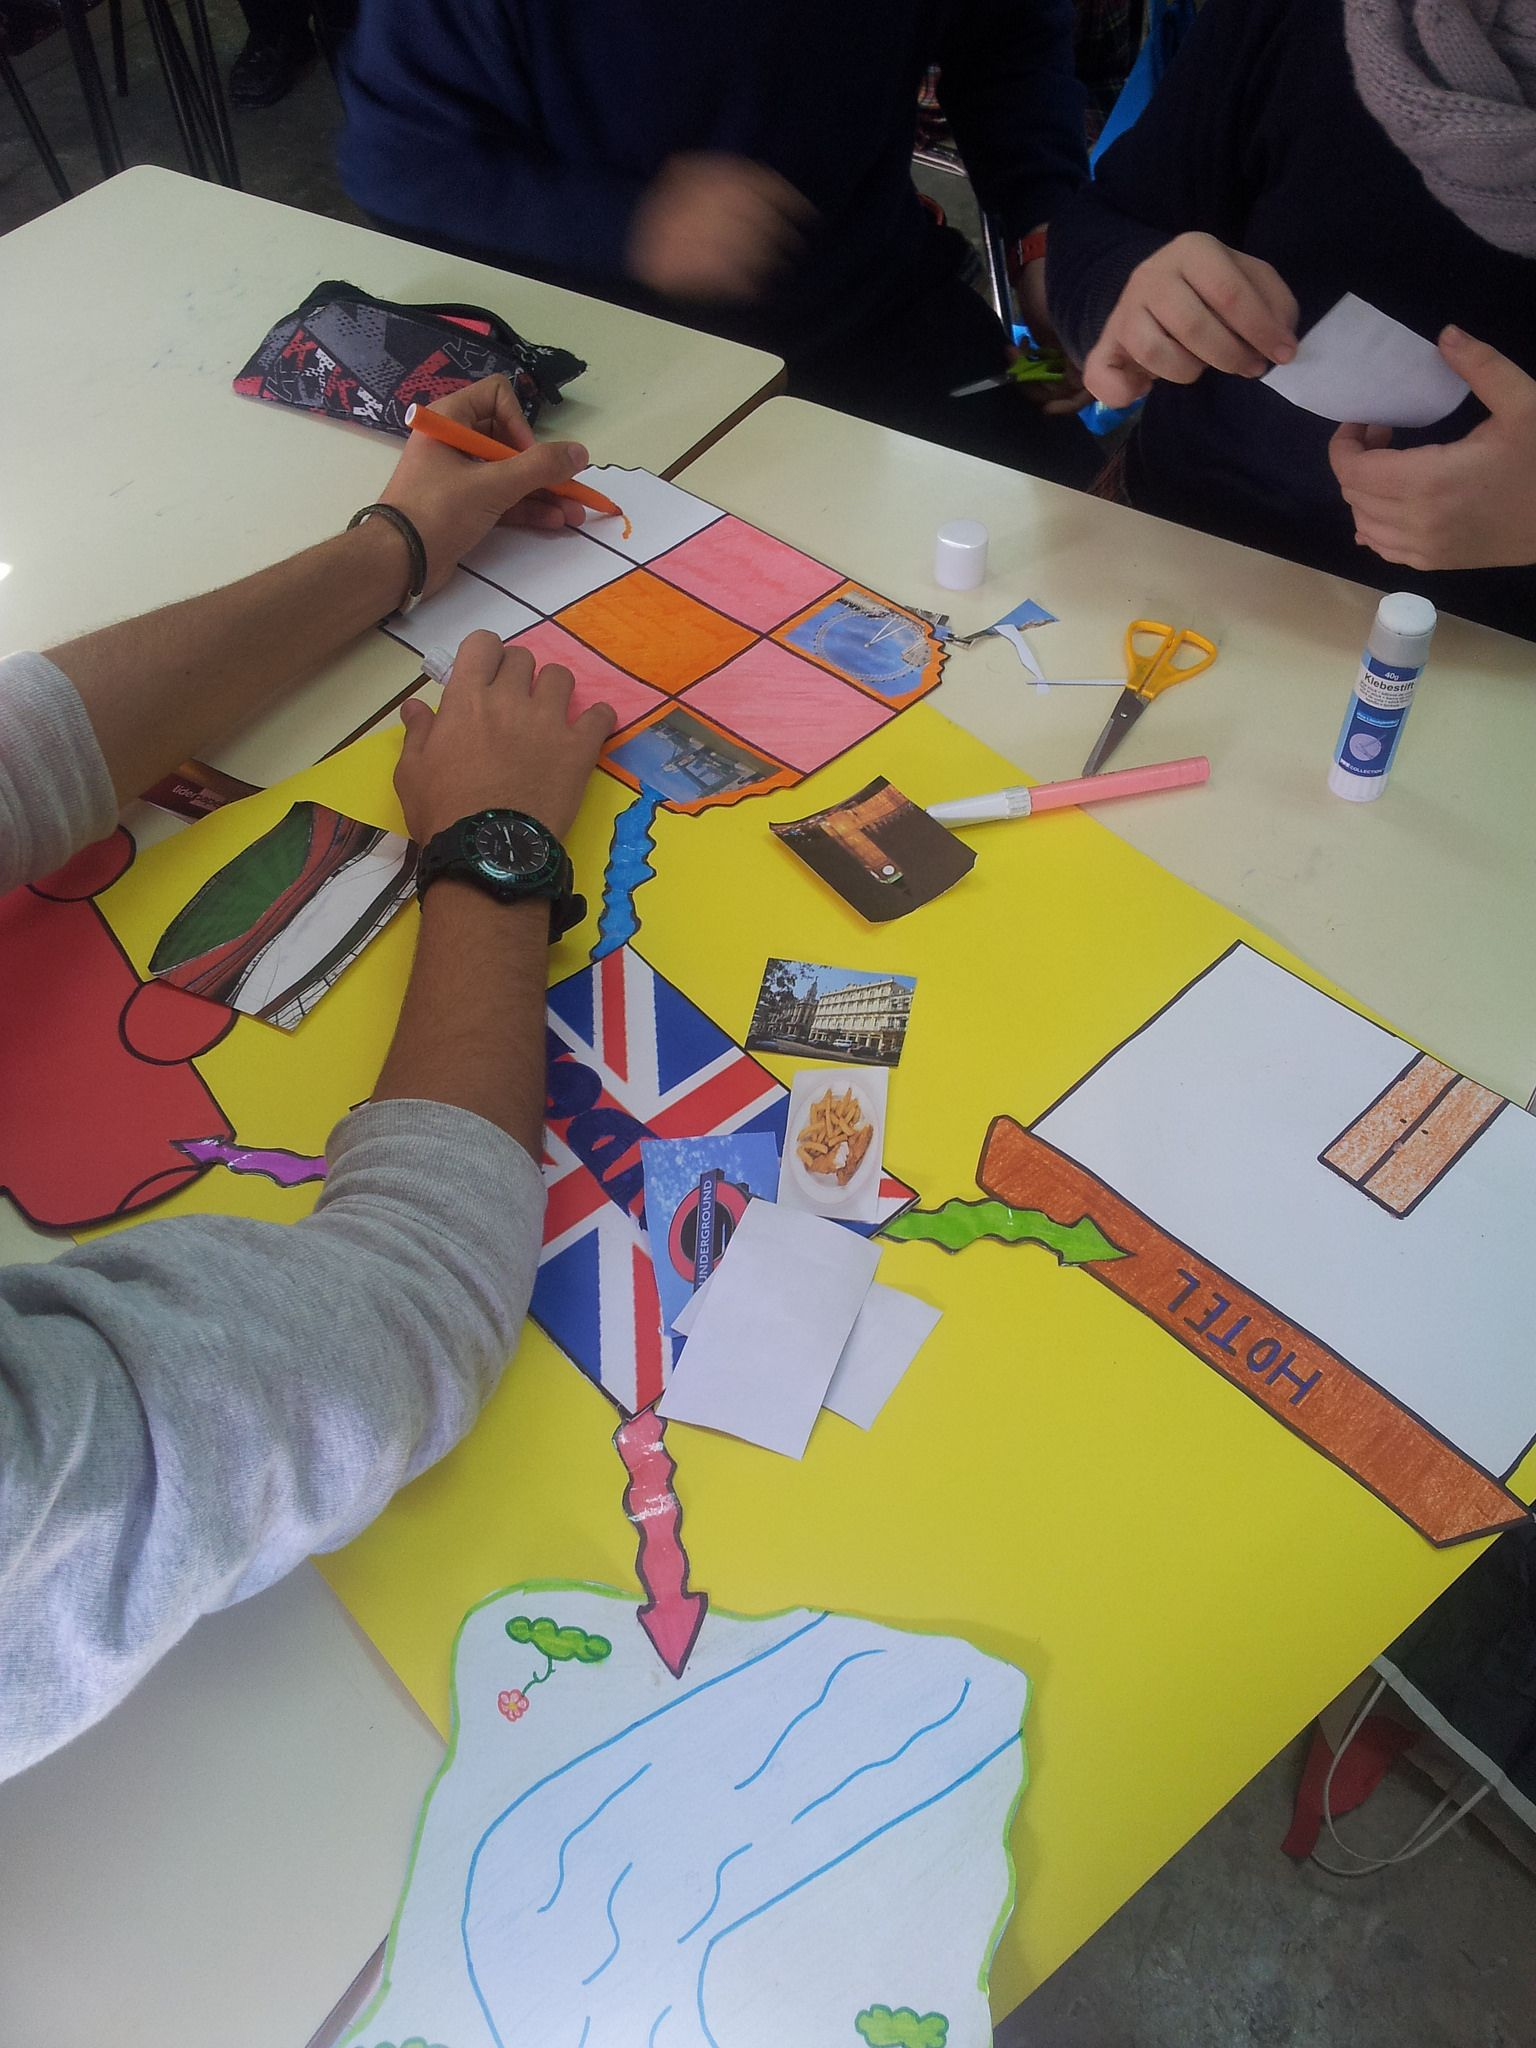 httpsflickrpj4b4Wk Mind Mapping London January